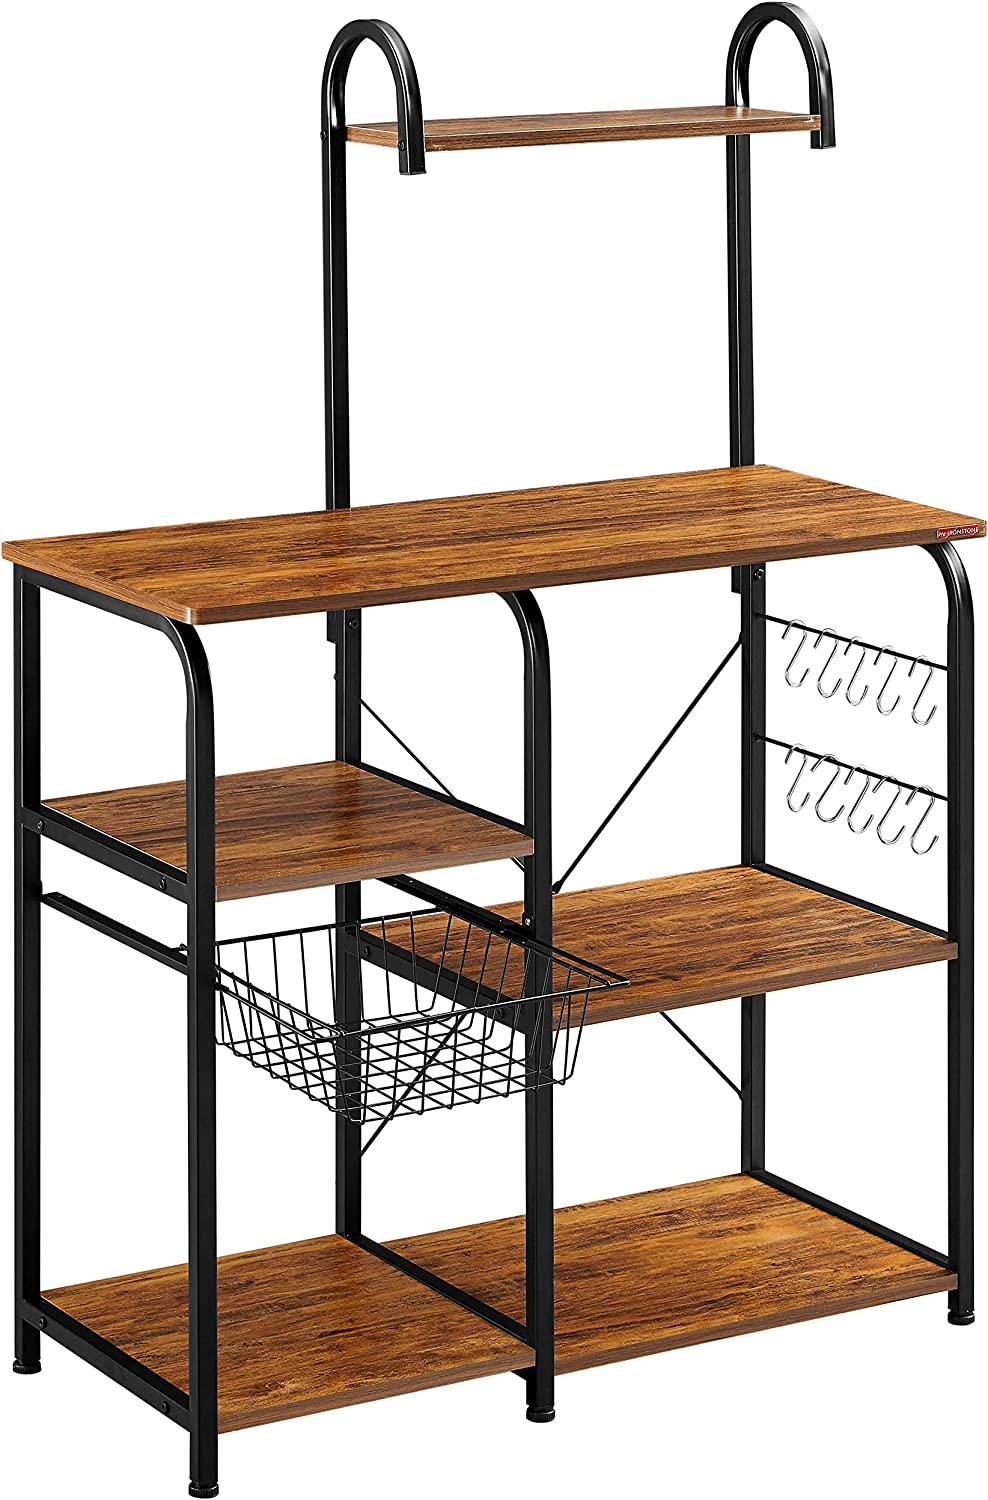 Mr IRONSTONE Vintage Kitchen Baker's Rack Kitchen Utility Cart Storage